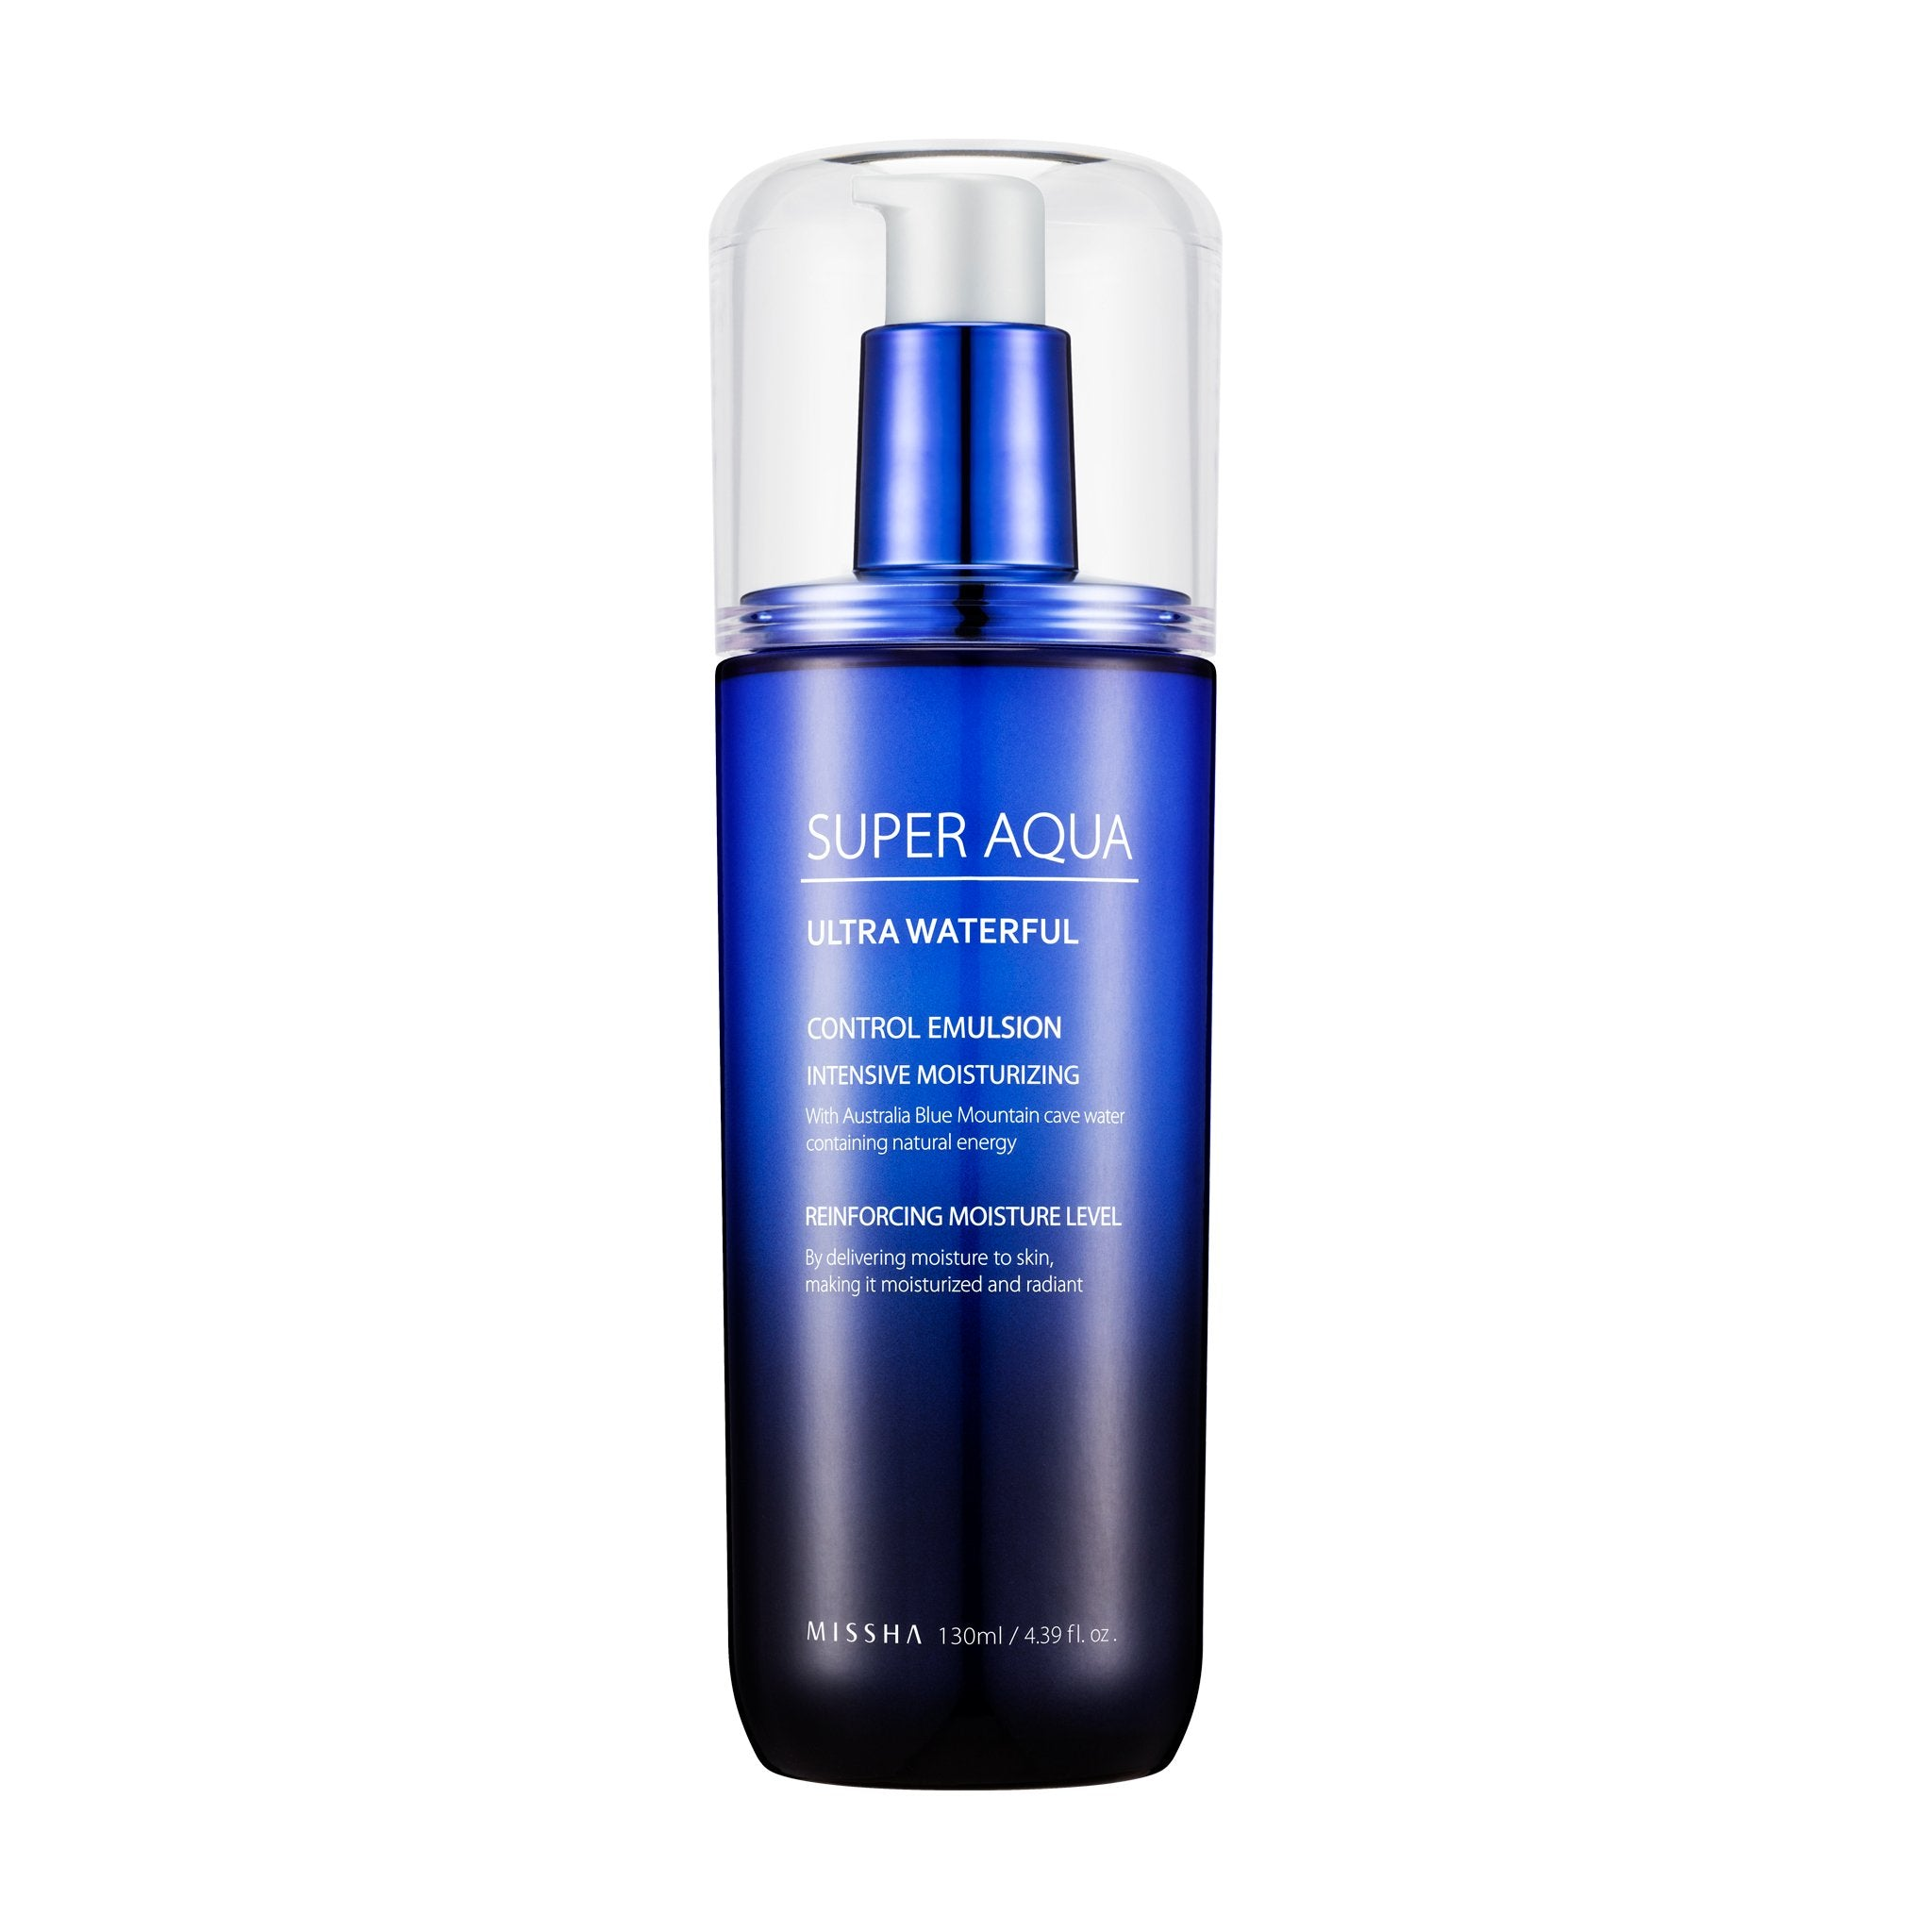 SUPER AQUA ULTRA WATERFUL CONTROL EMULSION - MISSHA